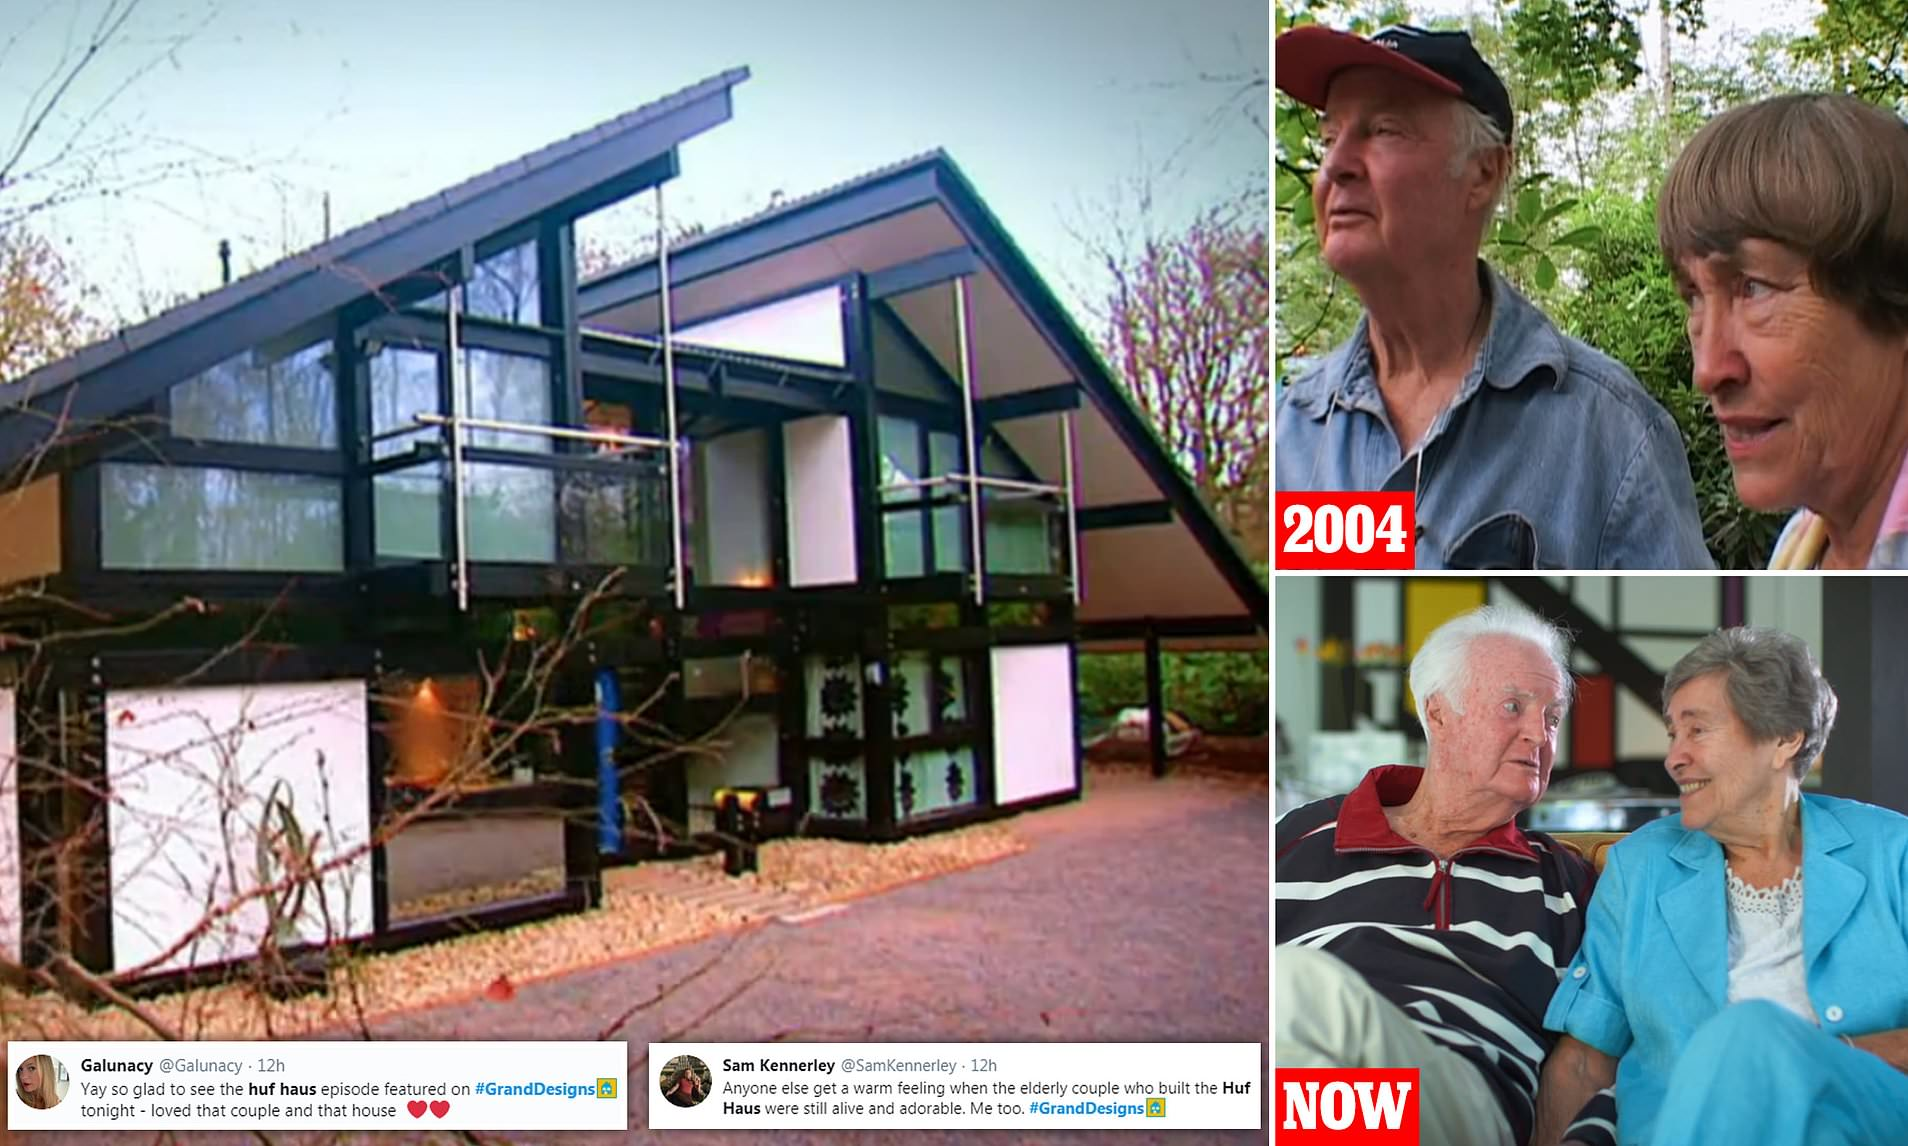 Haus Designer They're Still Alive!' Viewers Watching Grand Designs Anniversary Episode Coo Over Huf Haus Couple | Daily Mail Online